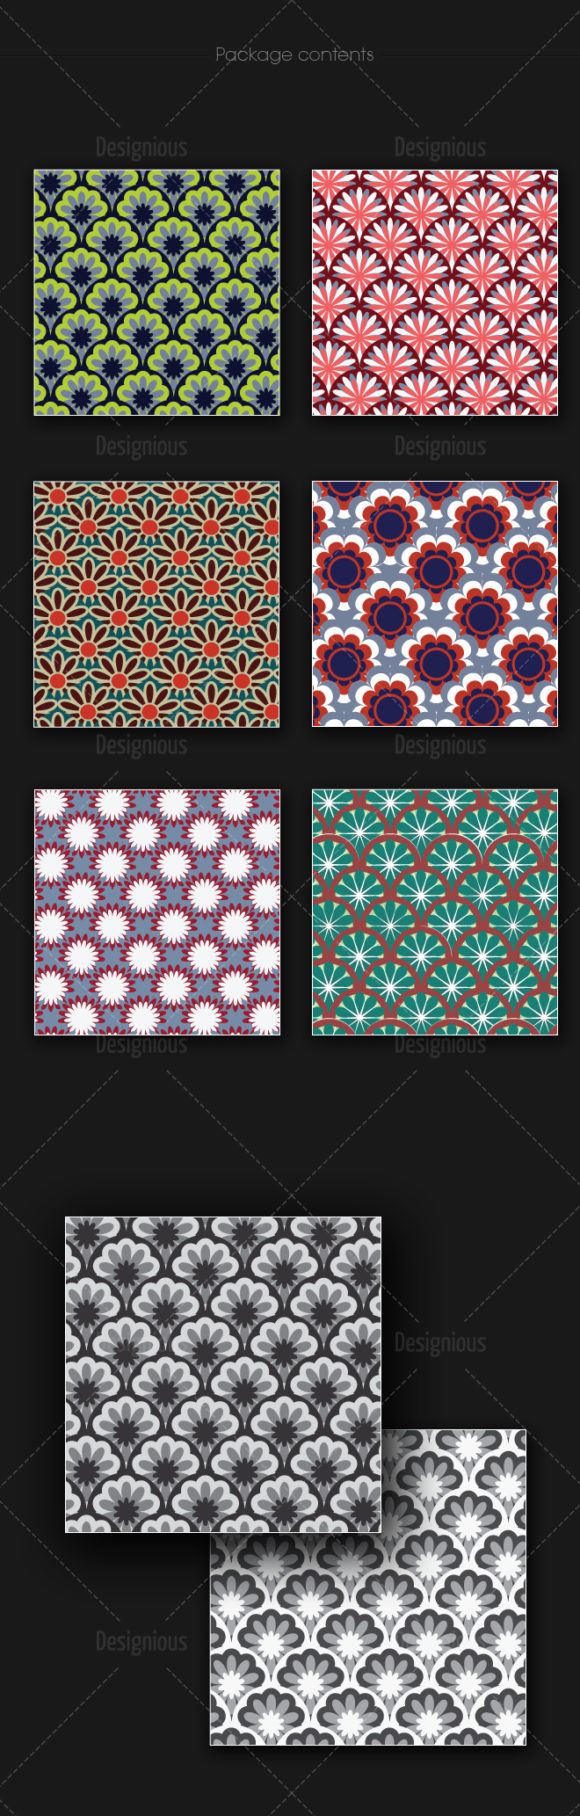 Seamless Patterns Vector Pack 164 products designious vector seamless 164 large